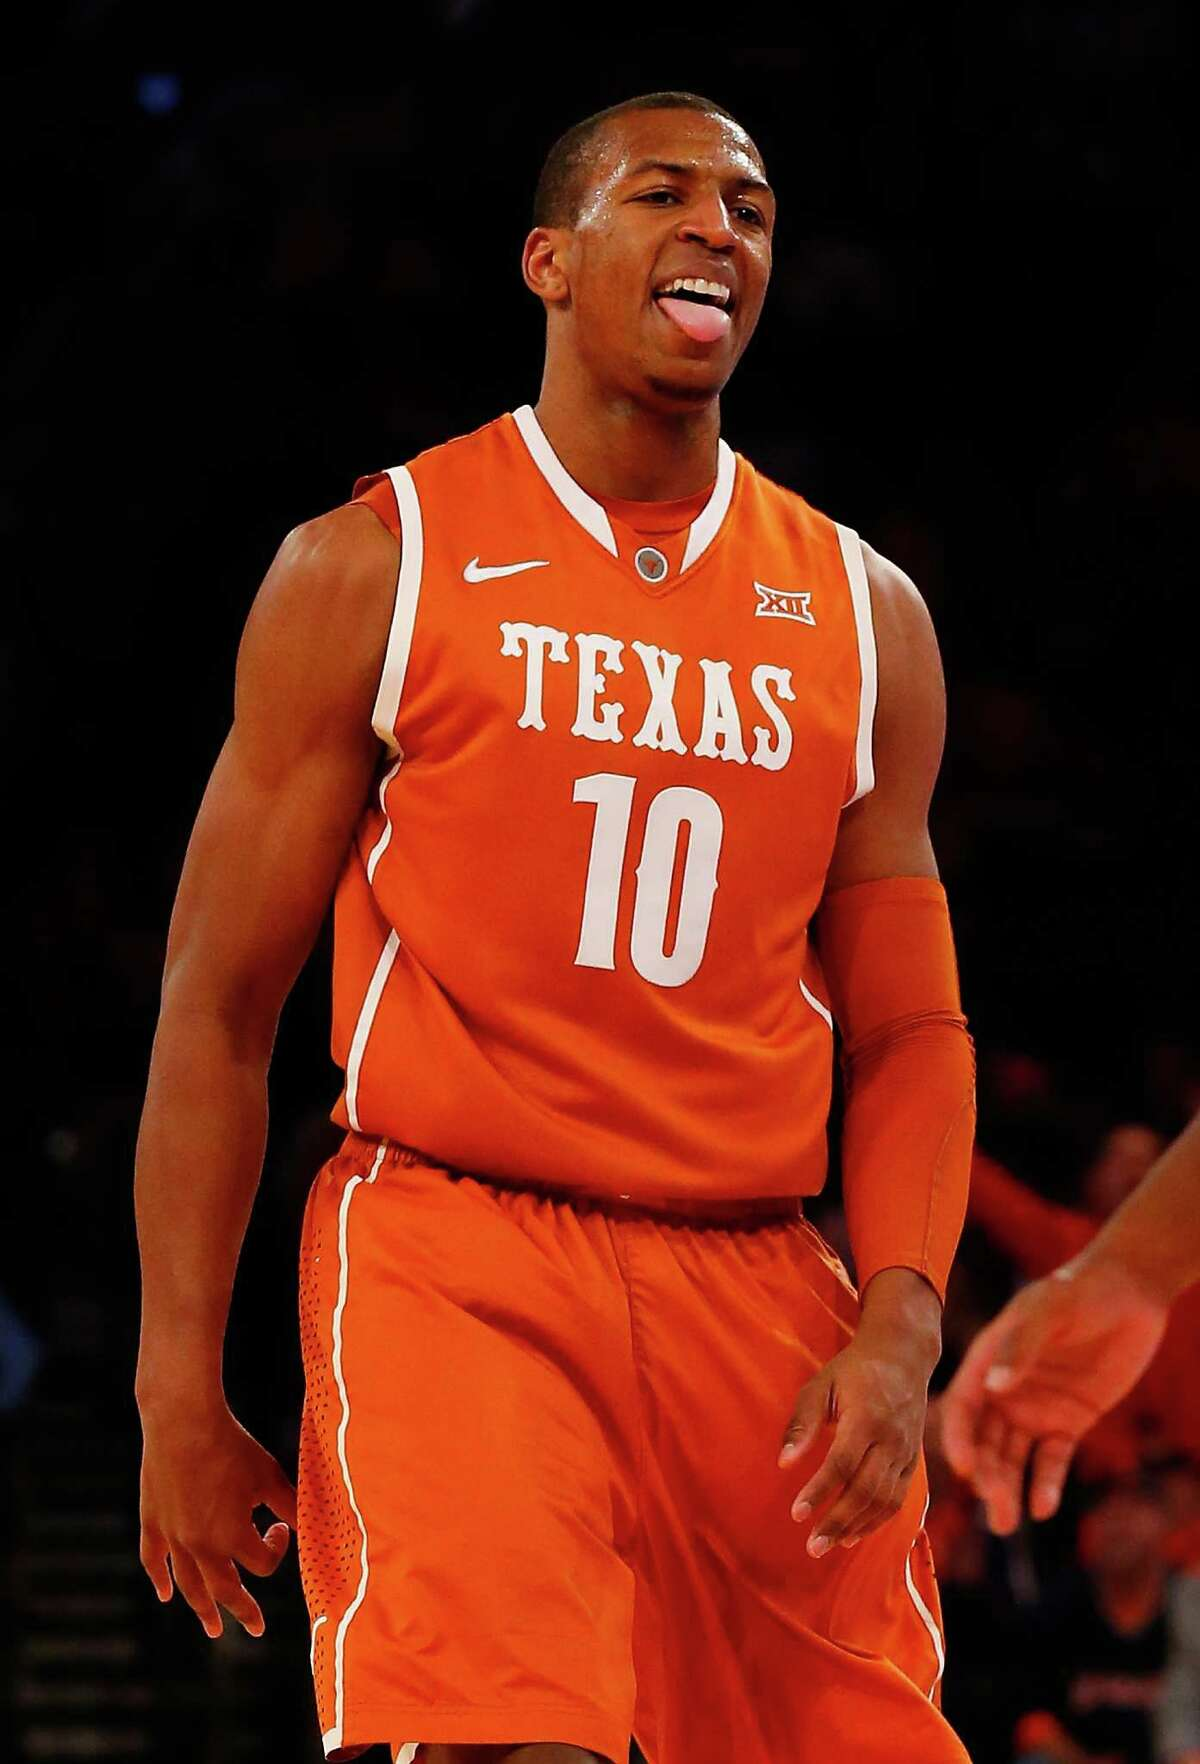 NEW YORK, NY - NOVEMBER 20: Jonathan Holmes #10 of the Texas Longhorns celebrates after hitting a three-pointer against the Iowa Hawkeyes during the 2K Classic at Madison Square Garden on November 20, 2014 in New York City.